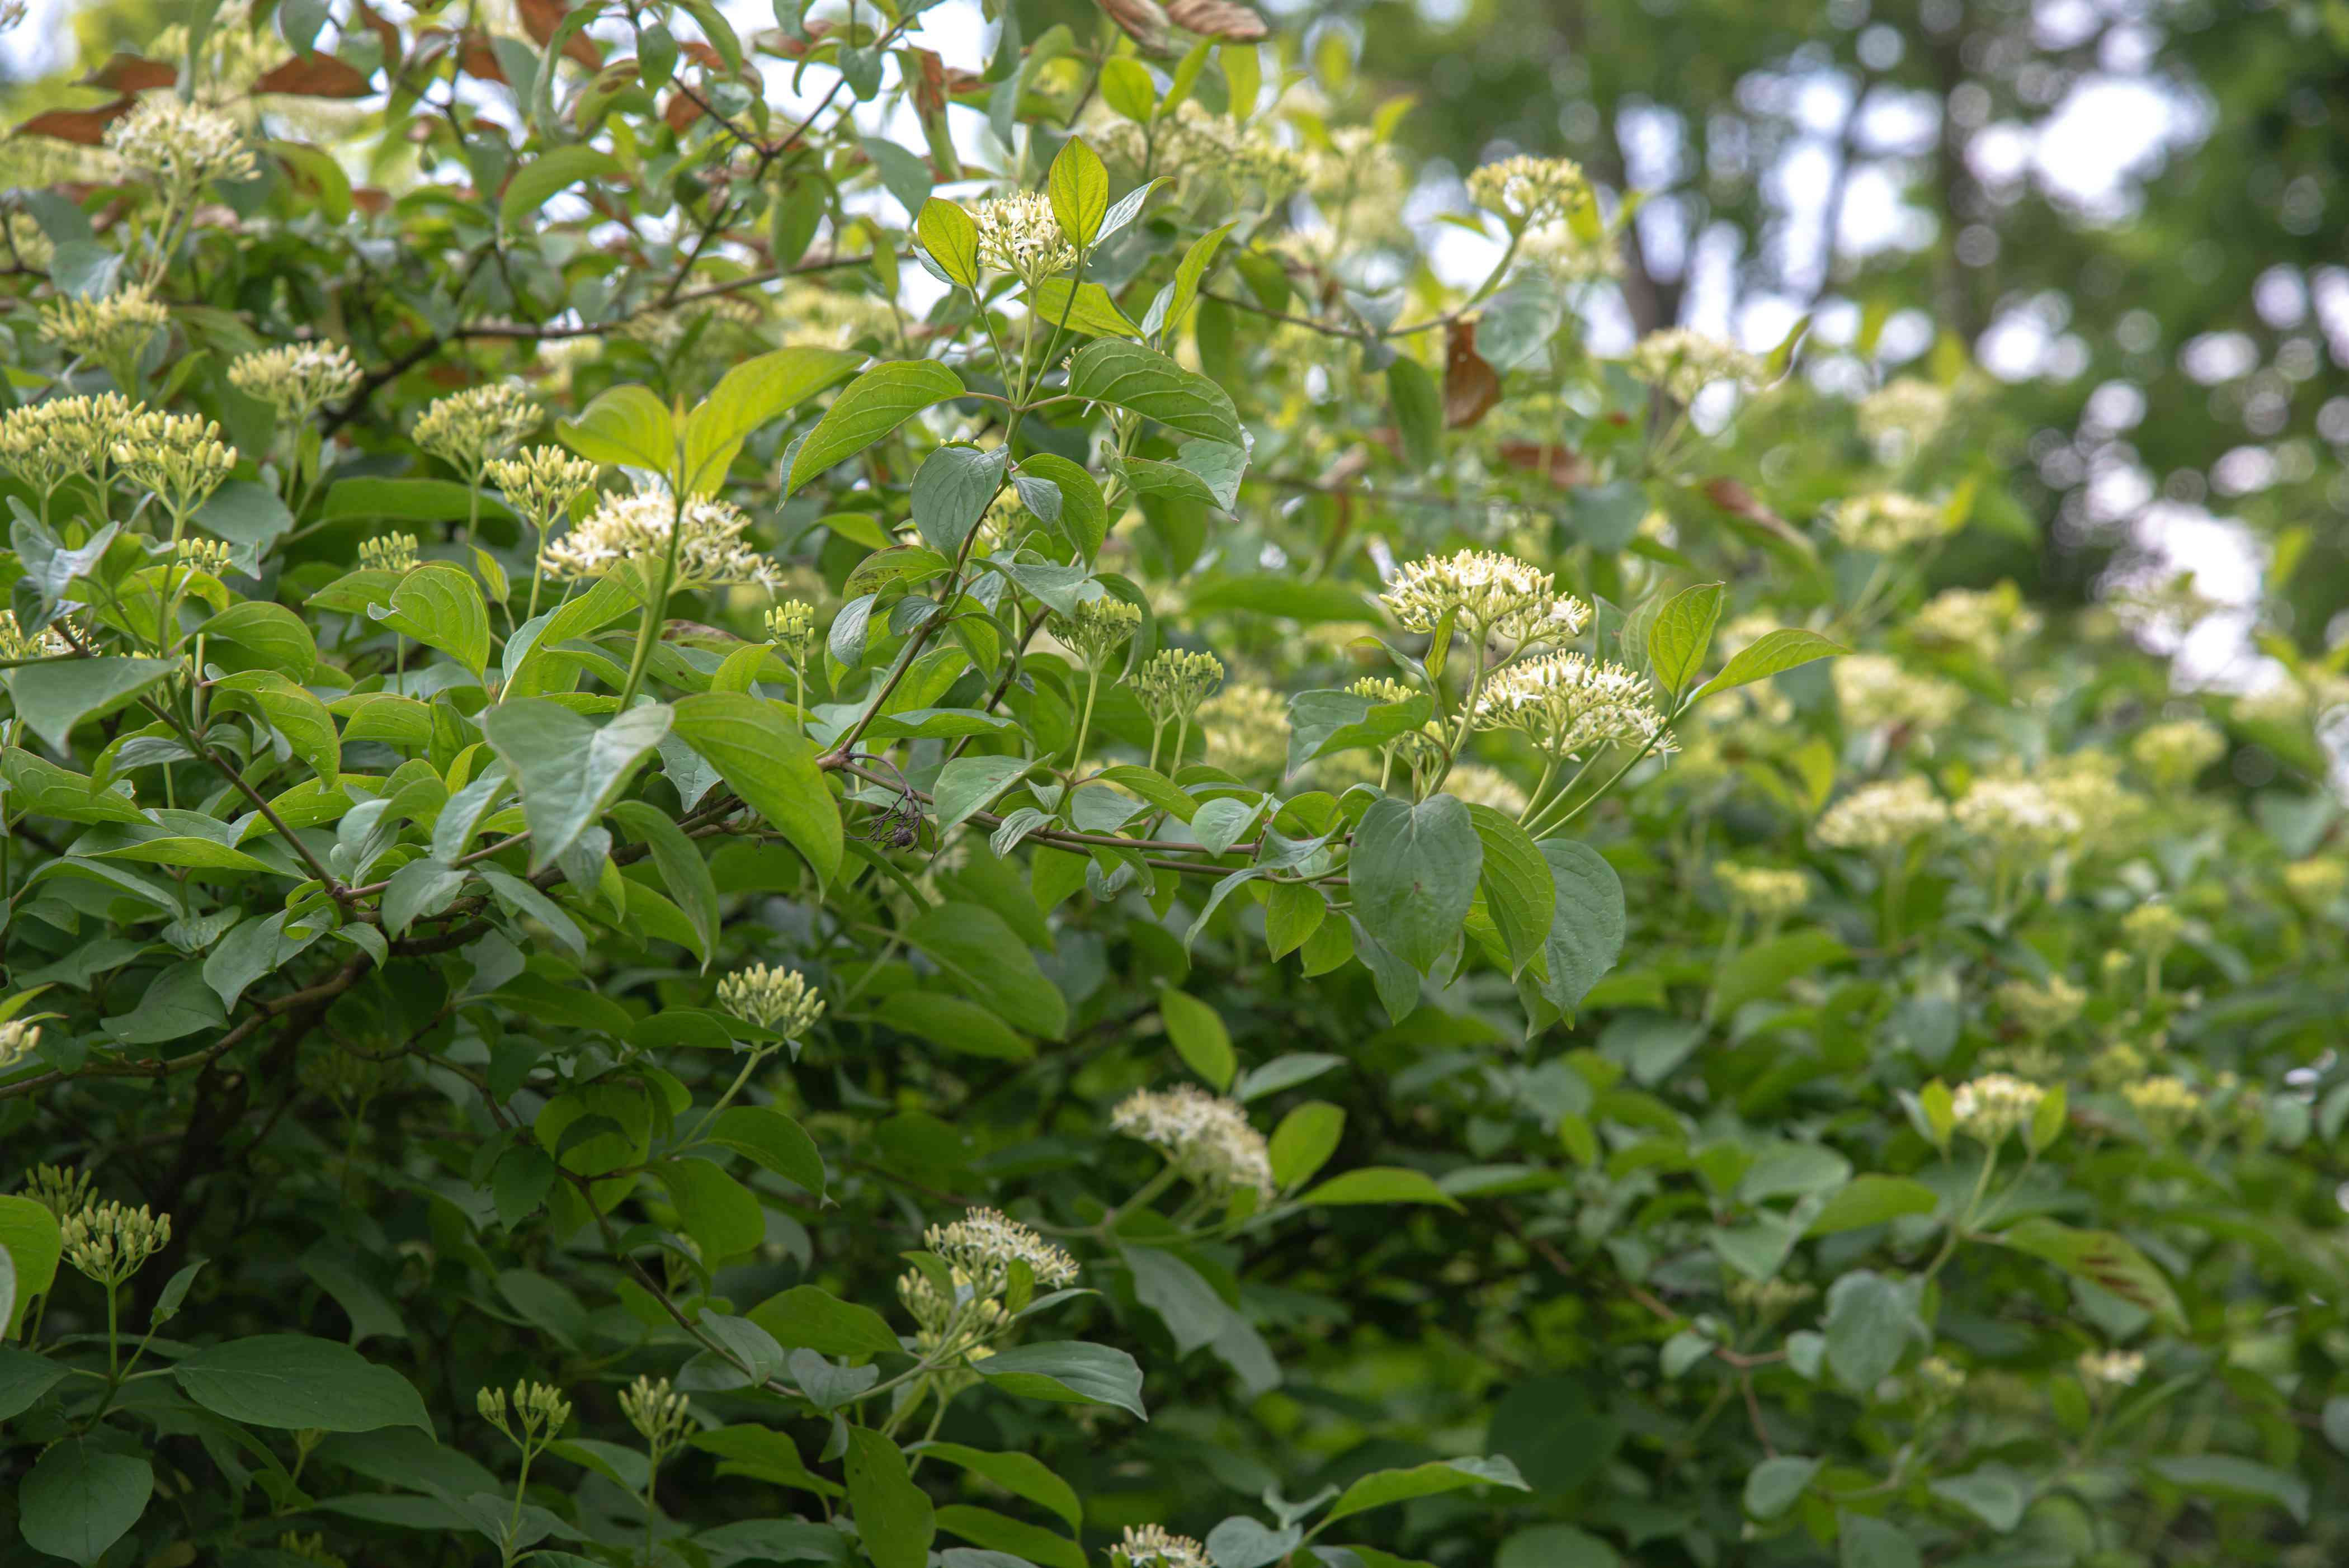 Gray dogwood native shrub with extending branches and small white flower clusters